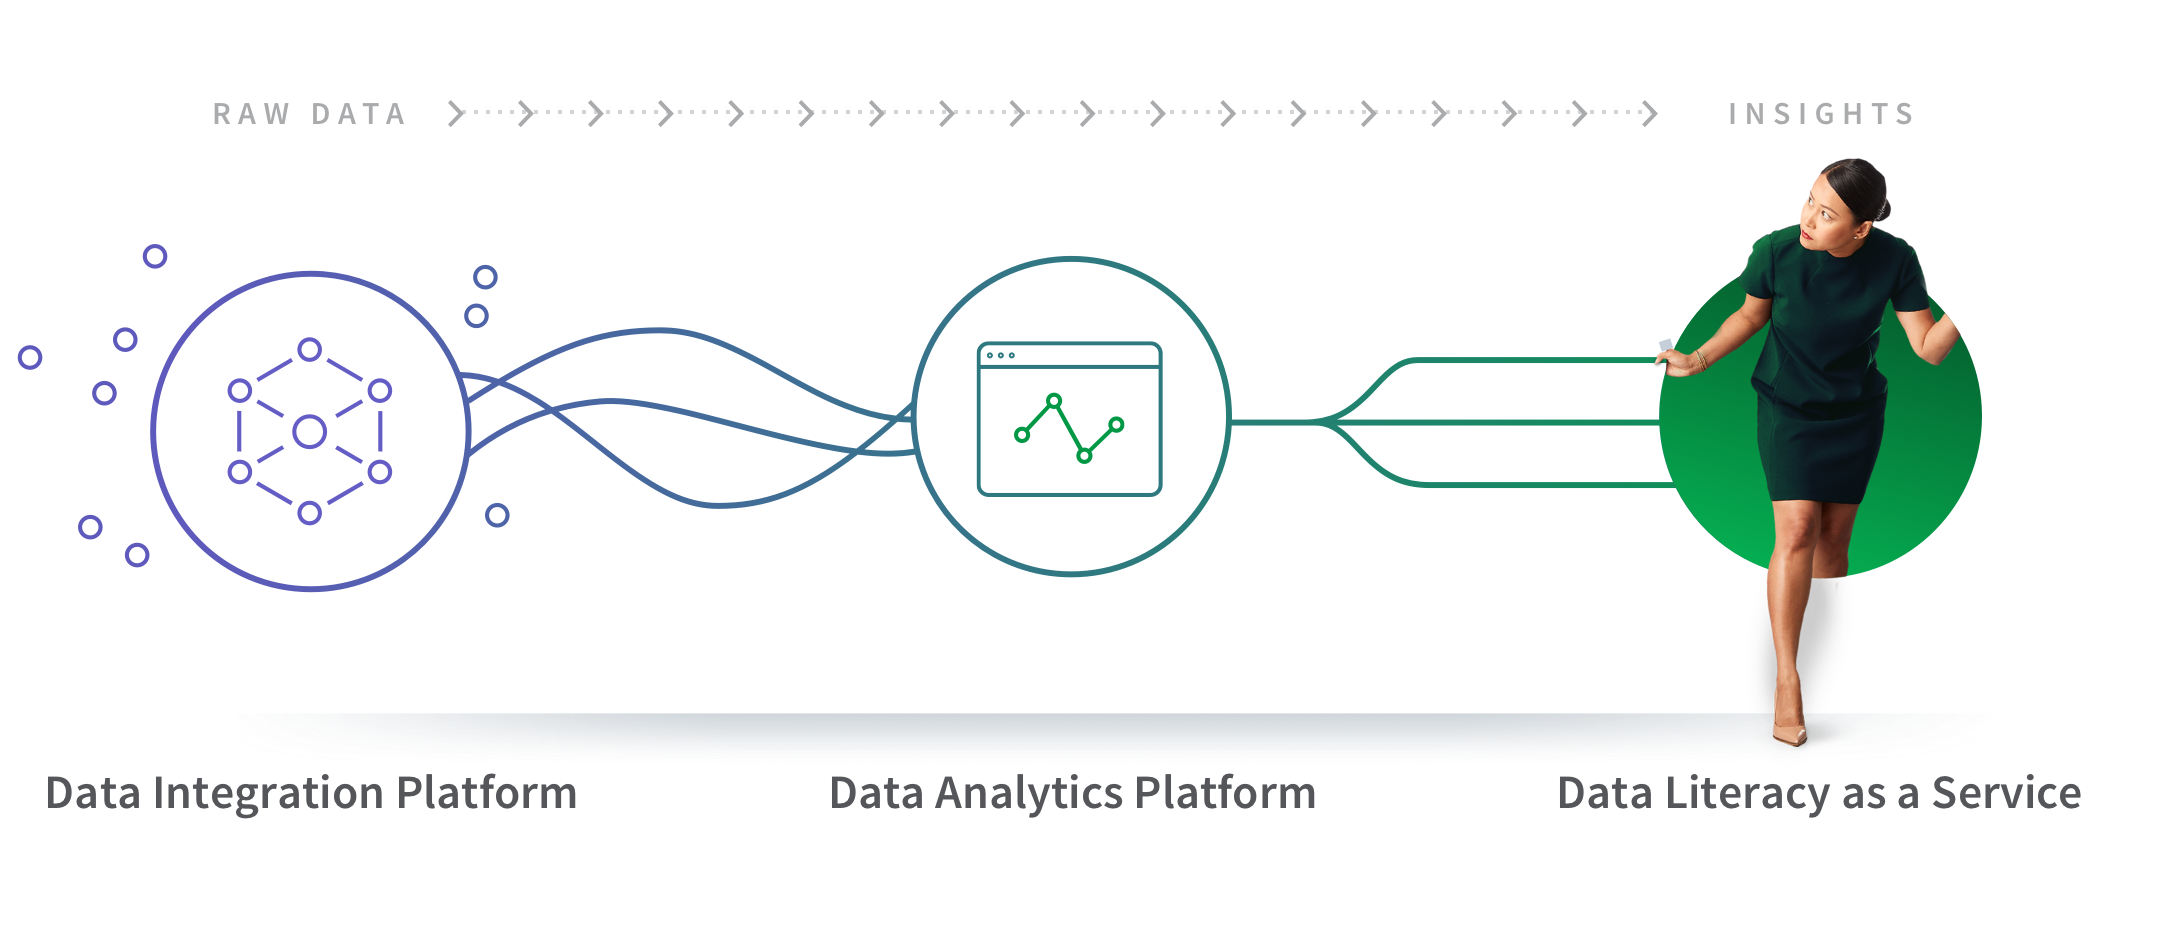 Ready to lead with data